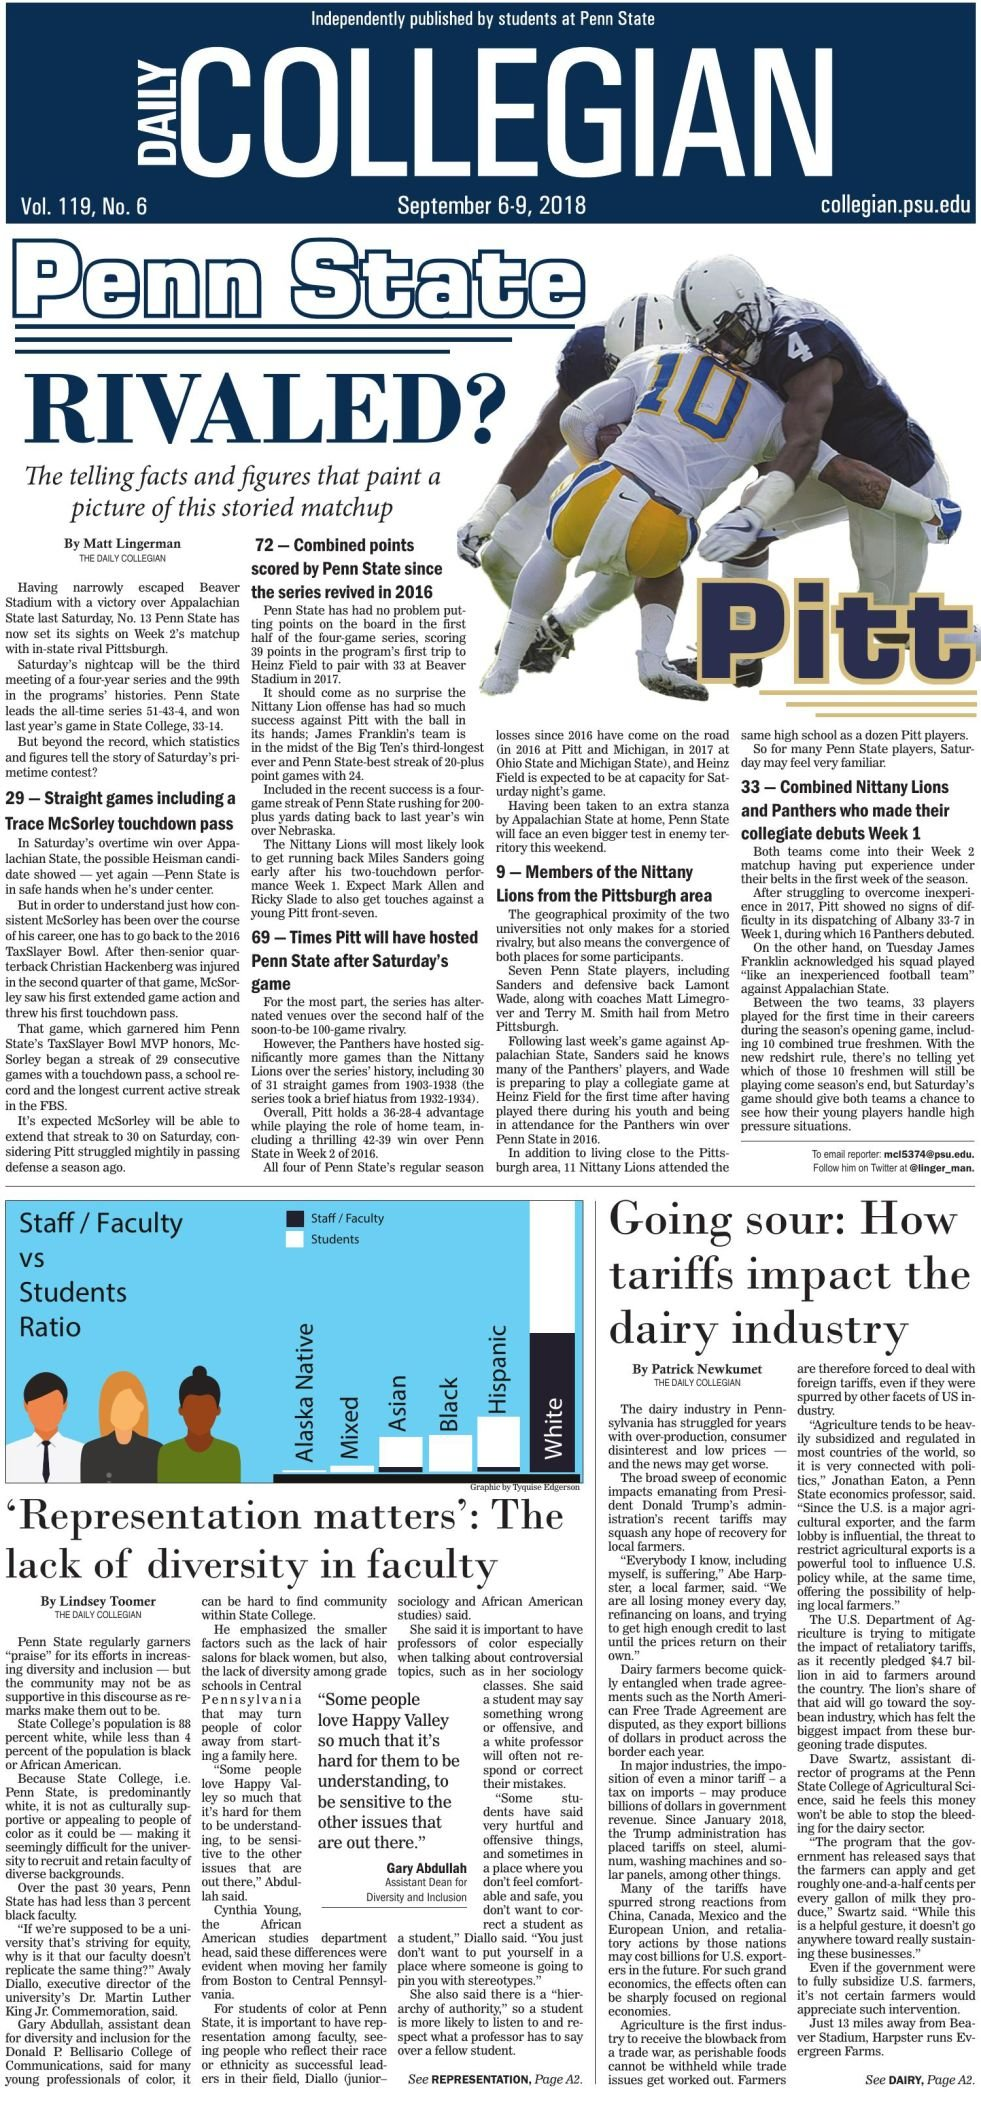 The Daily Collegian for Sept. 6, 2018